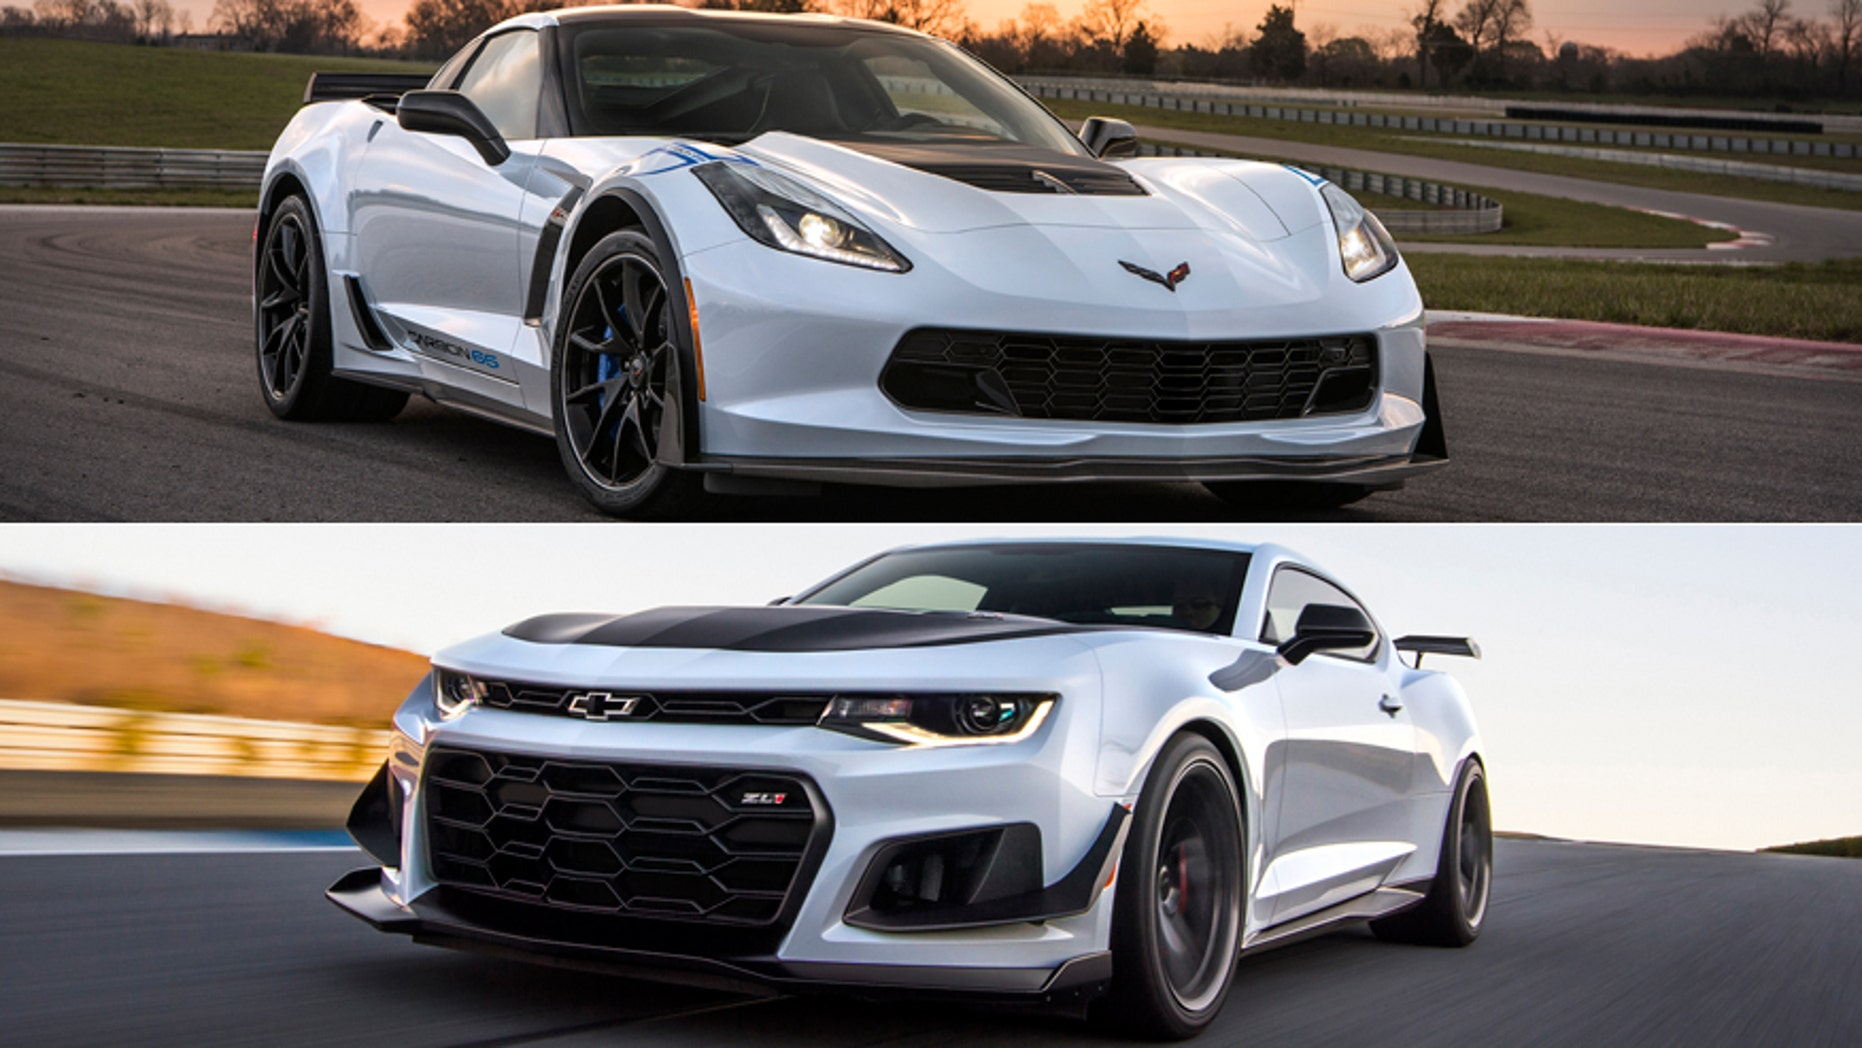 Most Powerful American Cars-2018 Chevrolet Camaro Z06/Camaro ZL1